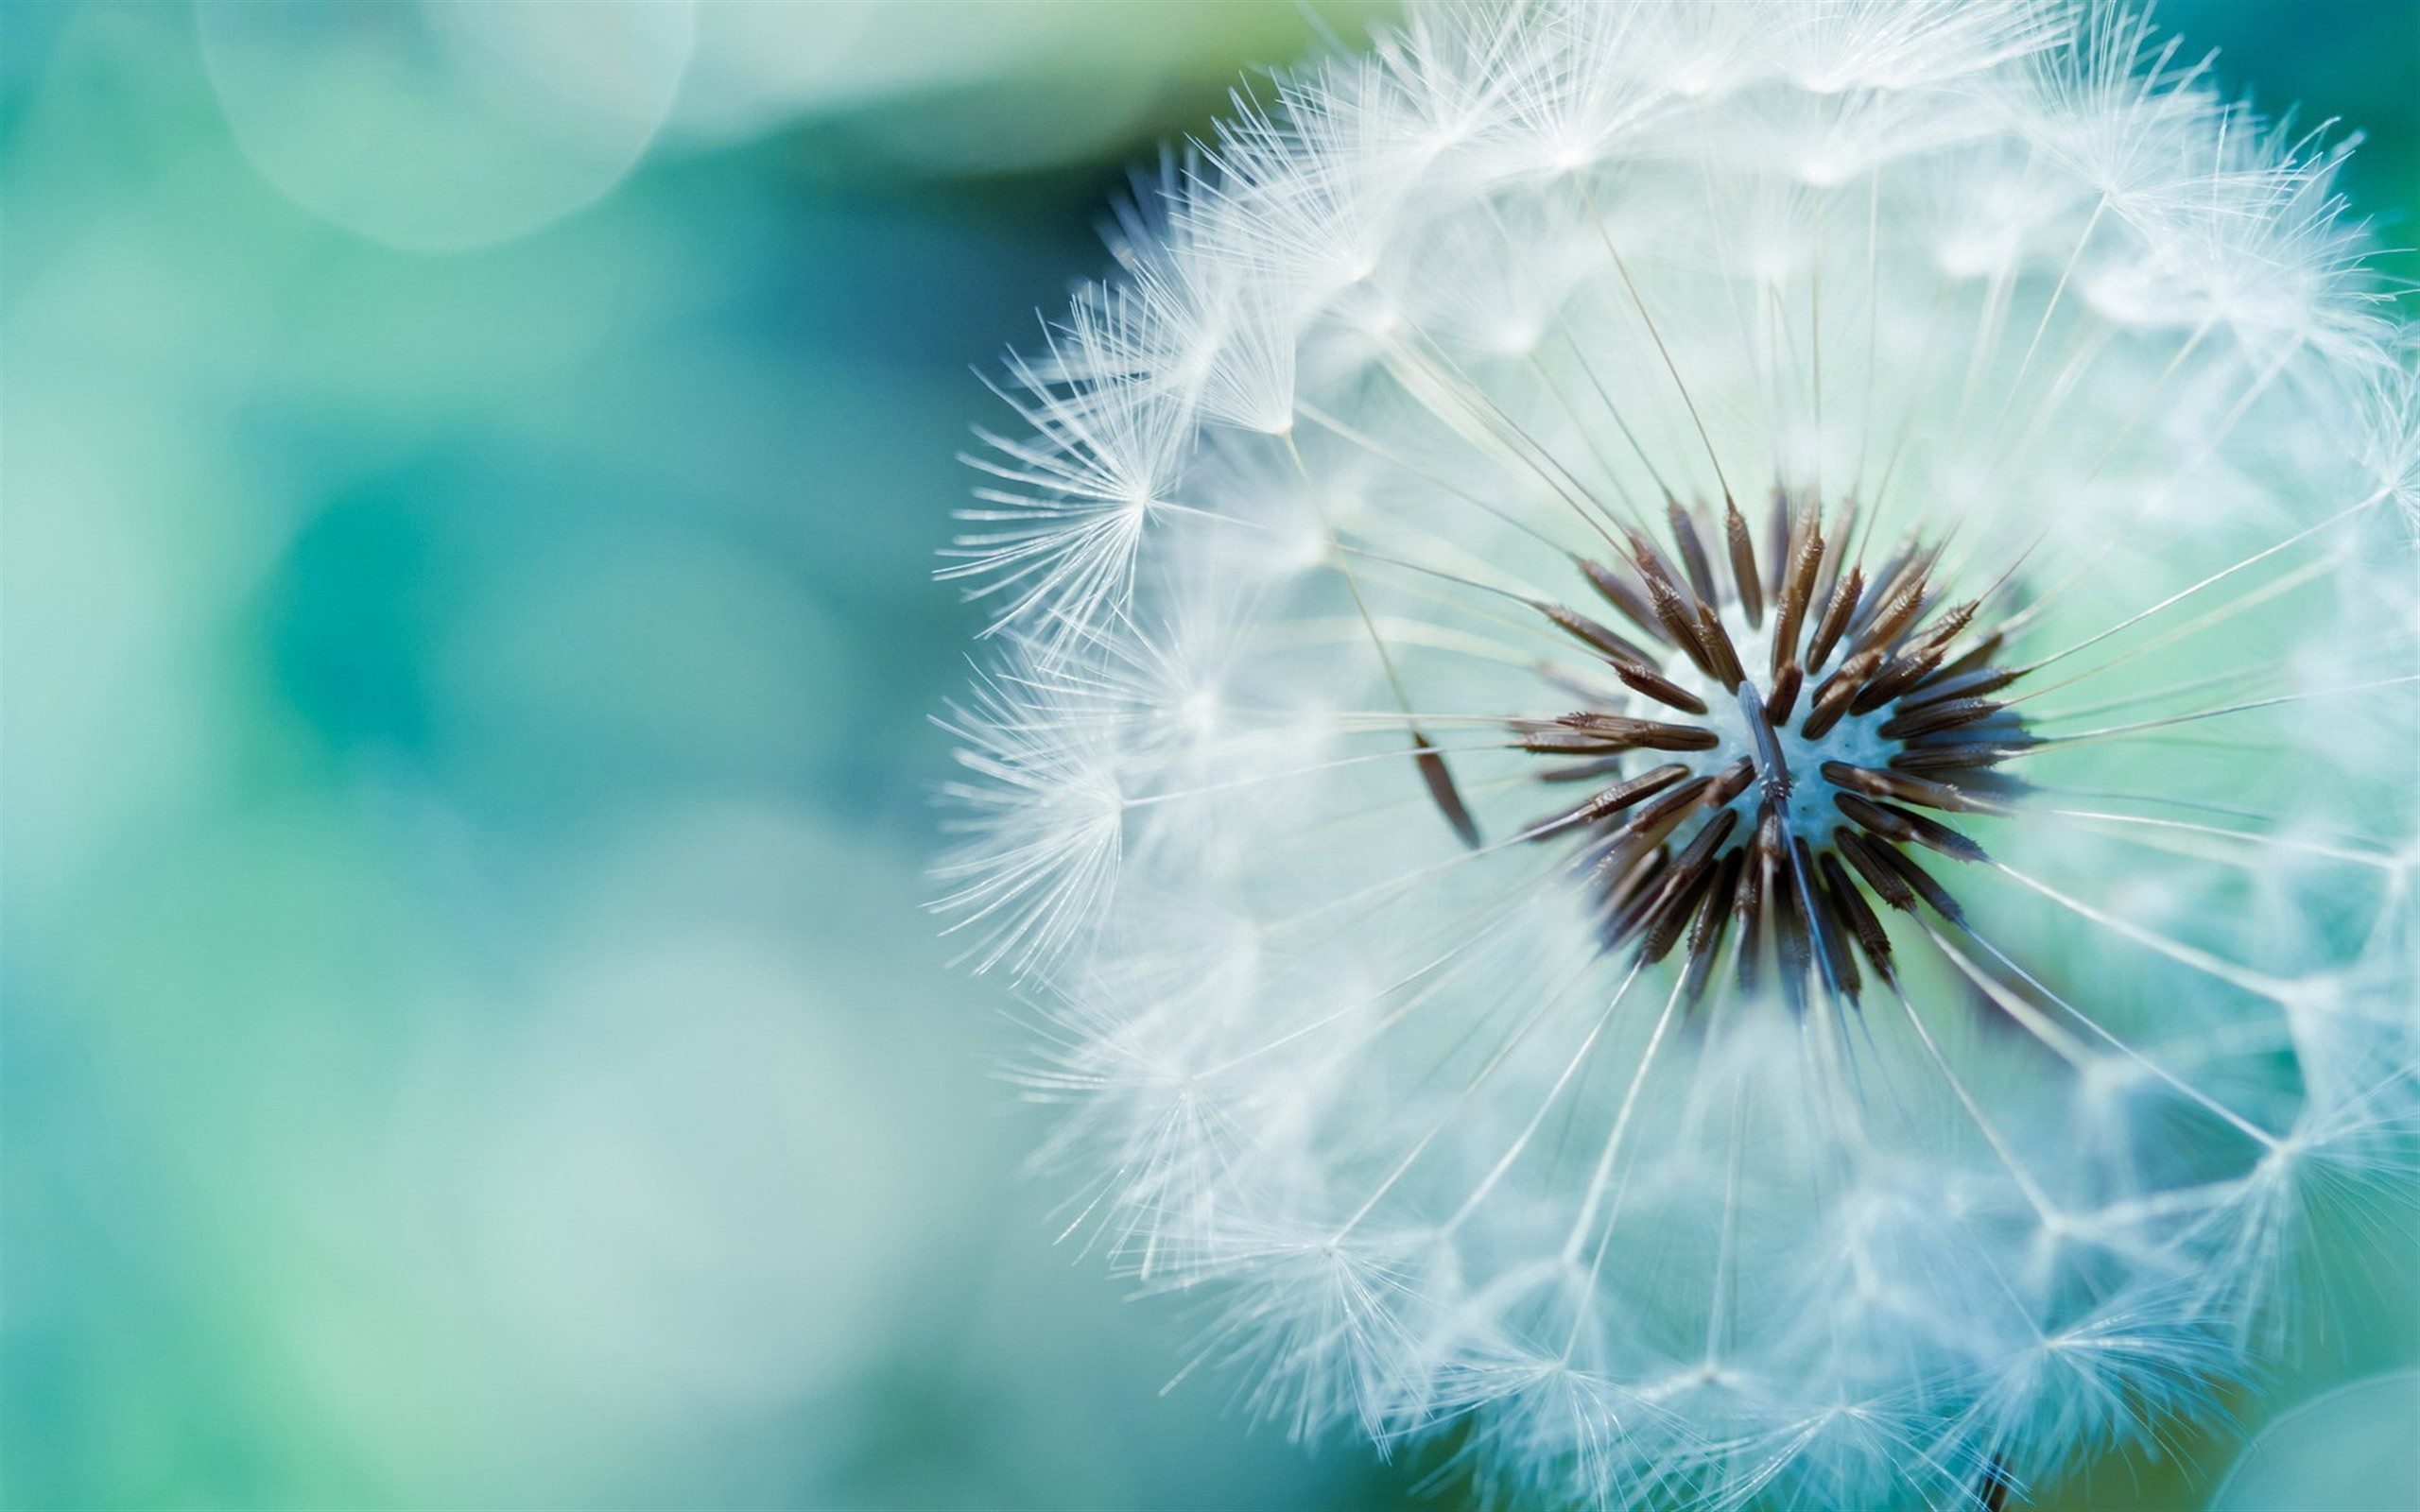 Beautiful Dandelion - Wallpaper